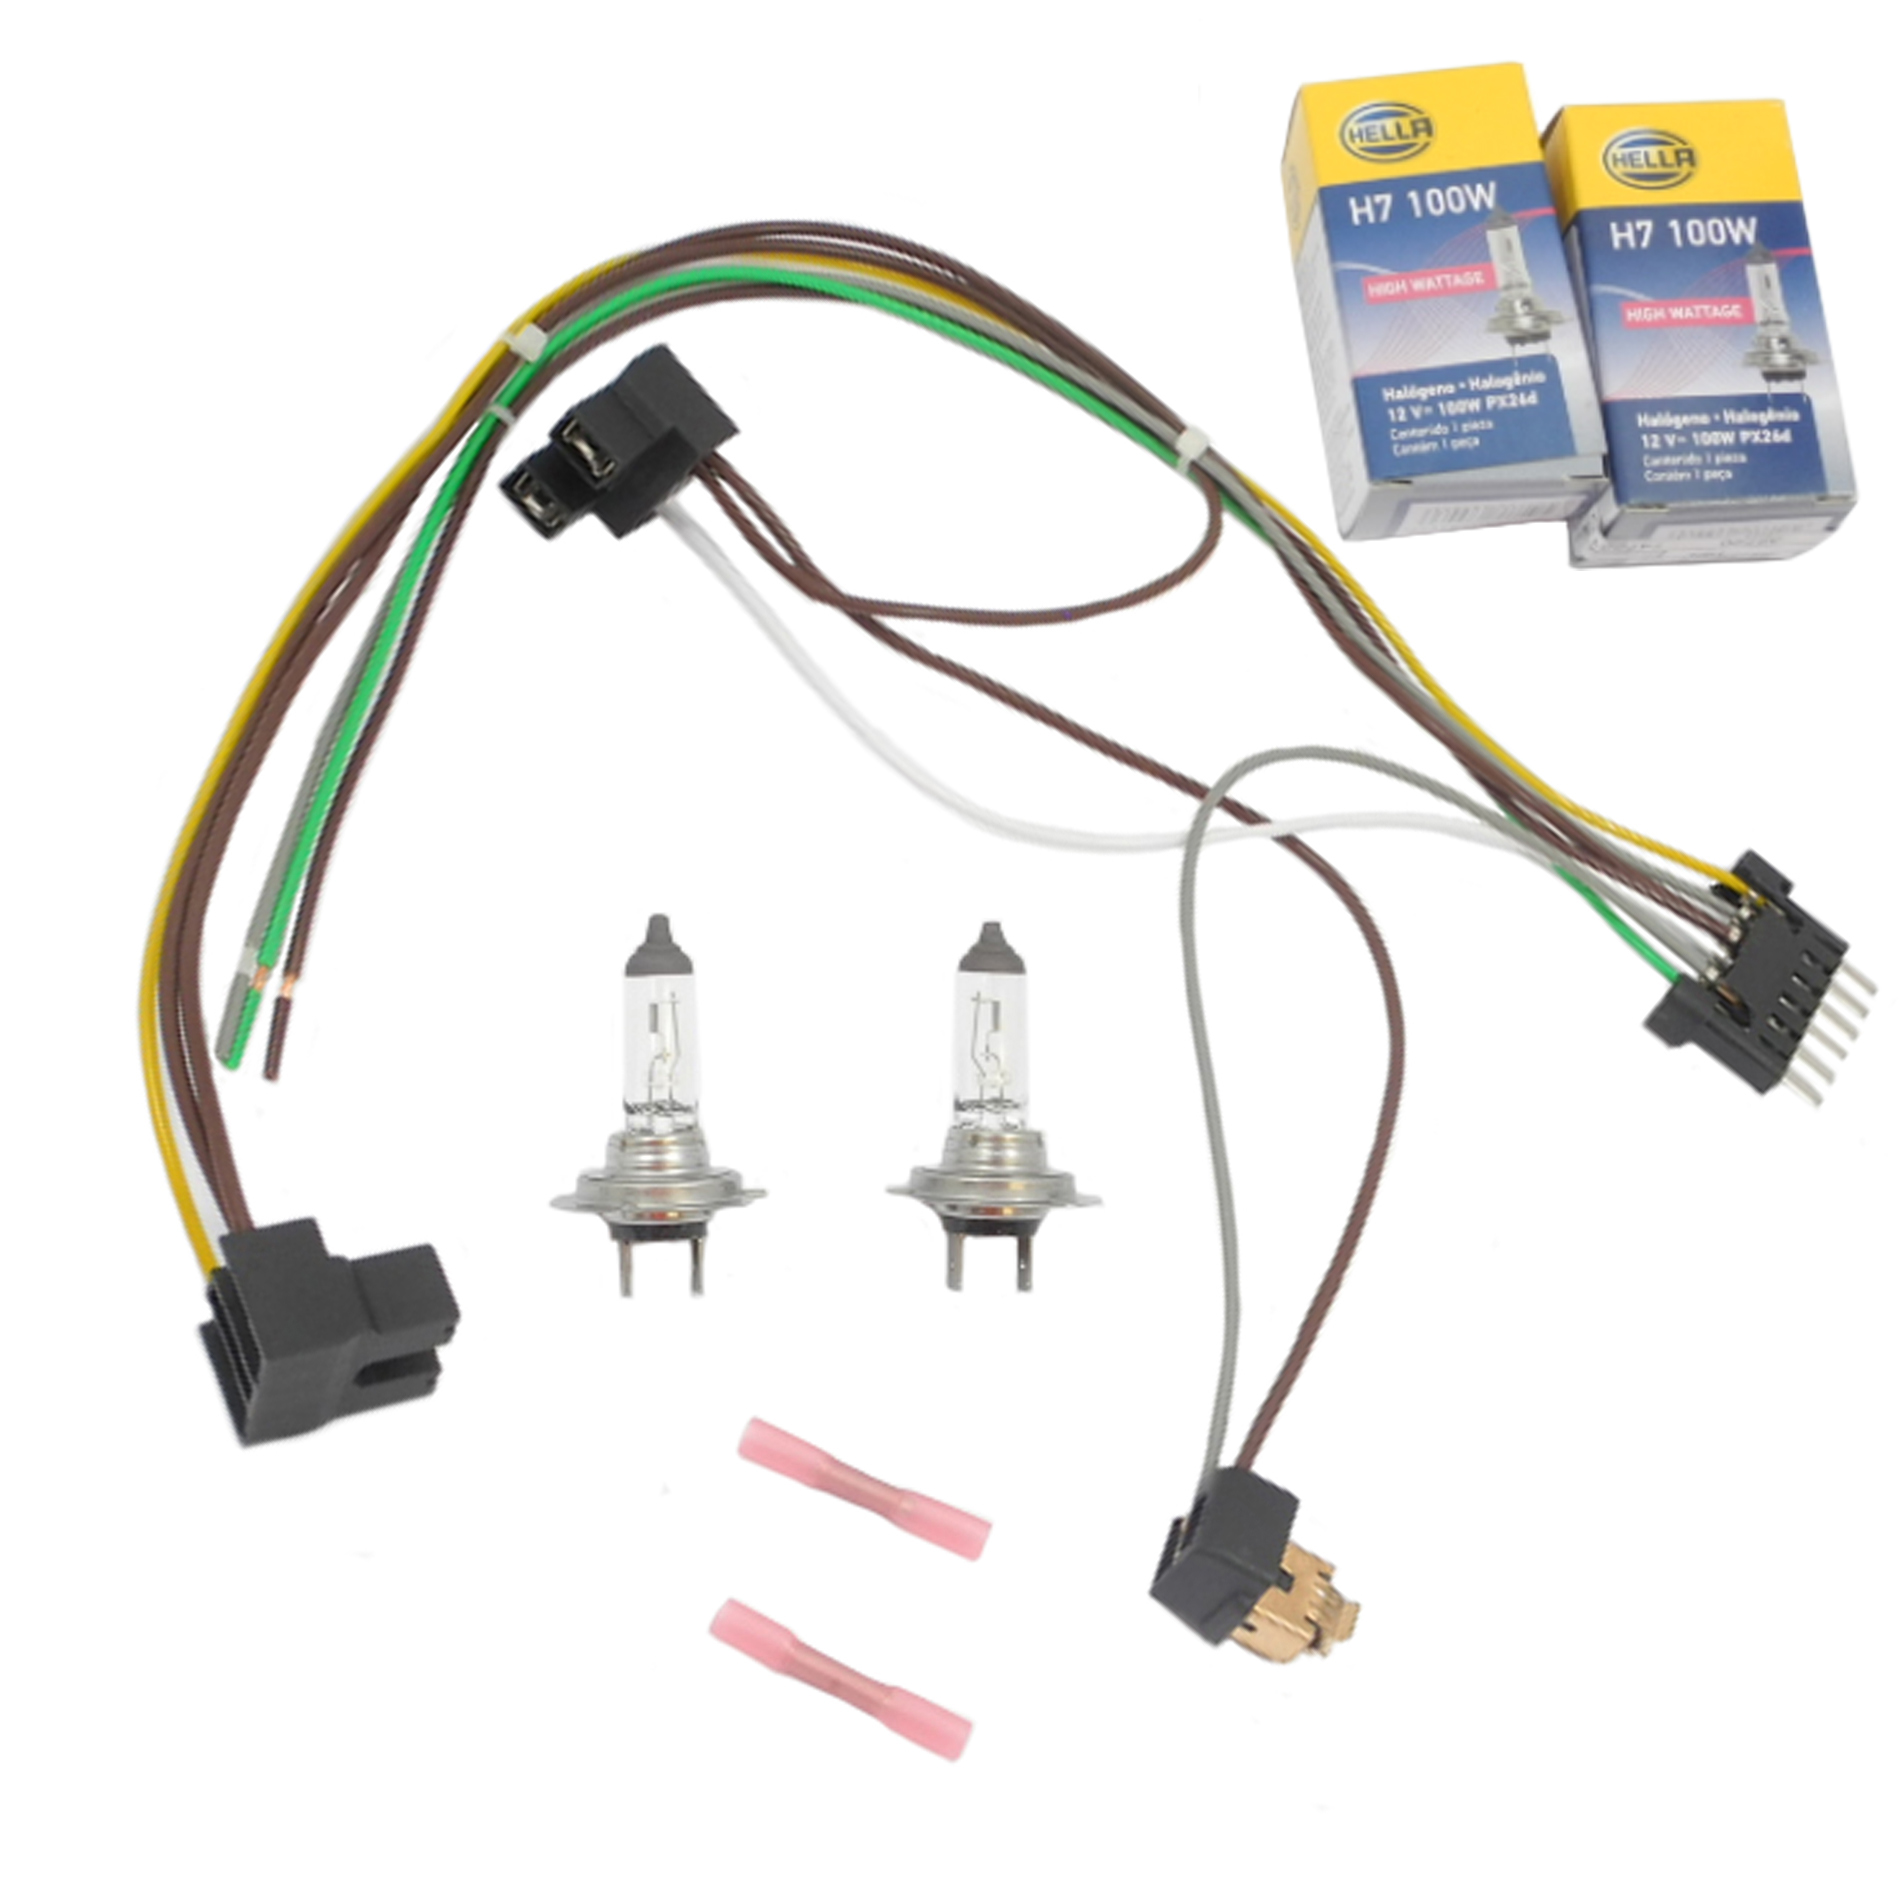 hight resolution of details about for s55 s600 benz headlight wiring harness h7 100w headlight bulb left right